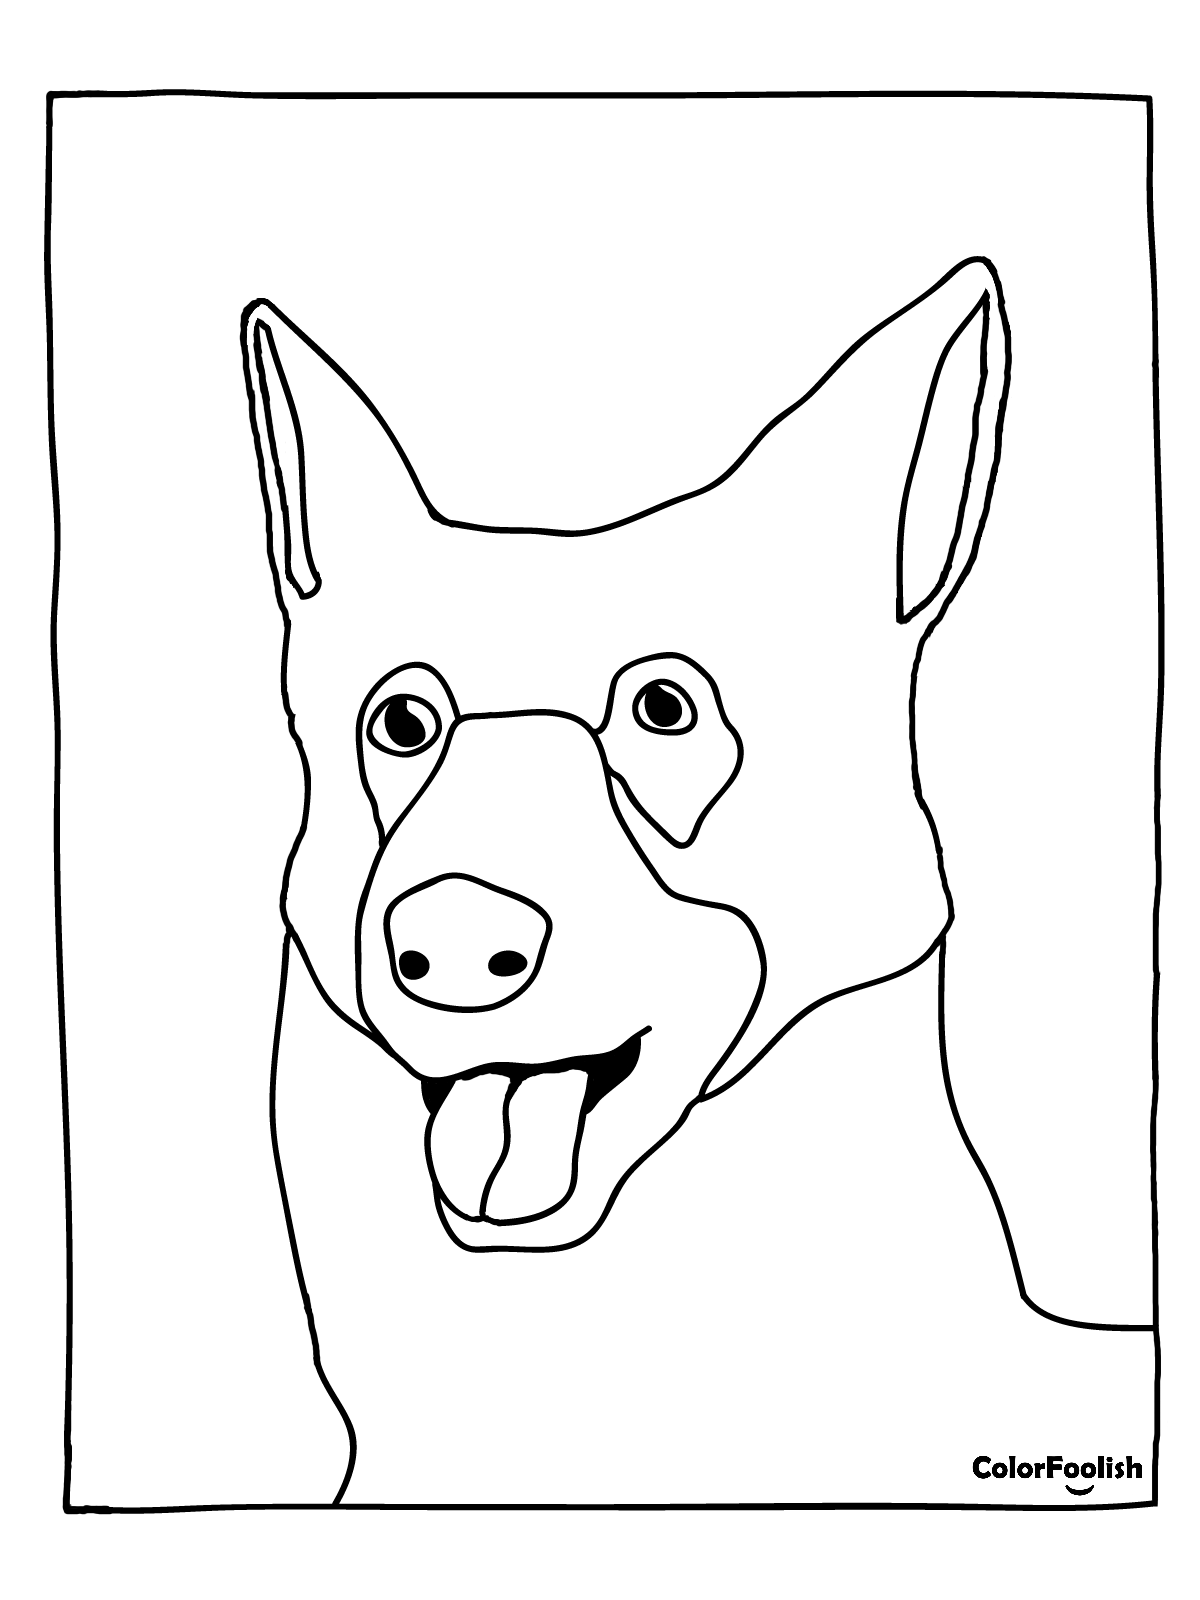 Coloring page of a German Shepherd dog